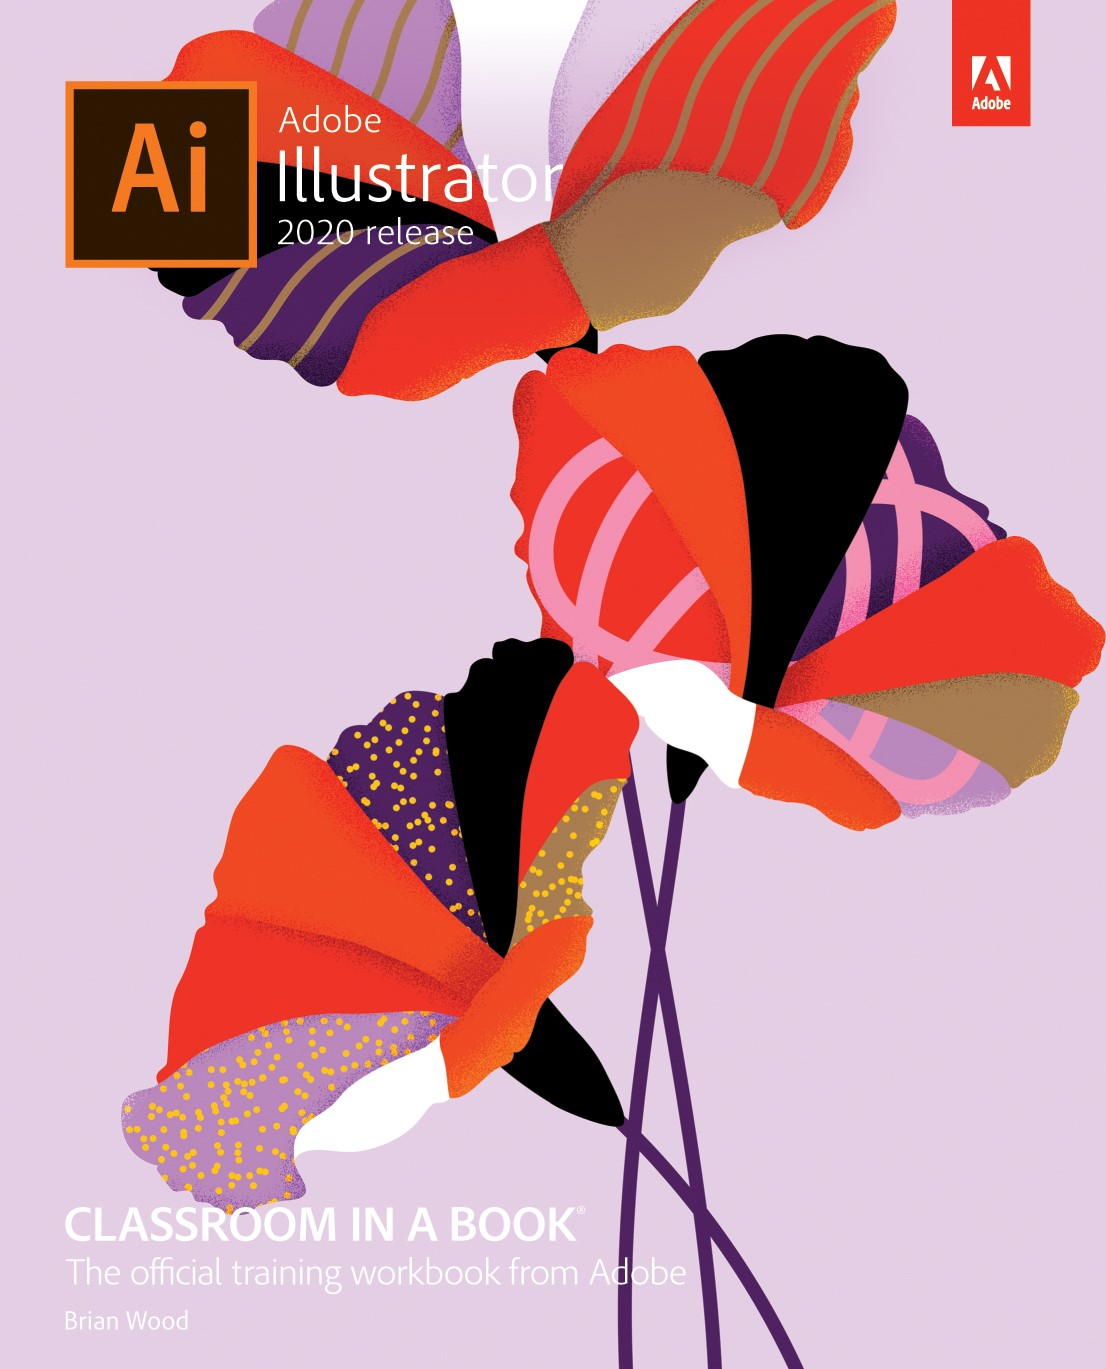 Adobe Illustrator Classroom in a Book (2020 release)